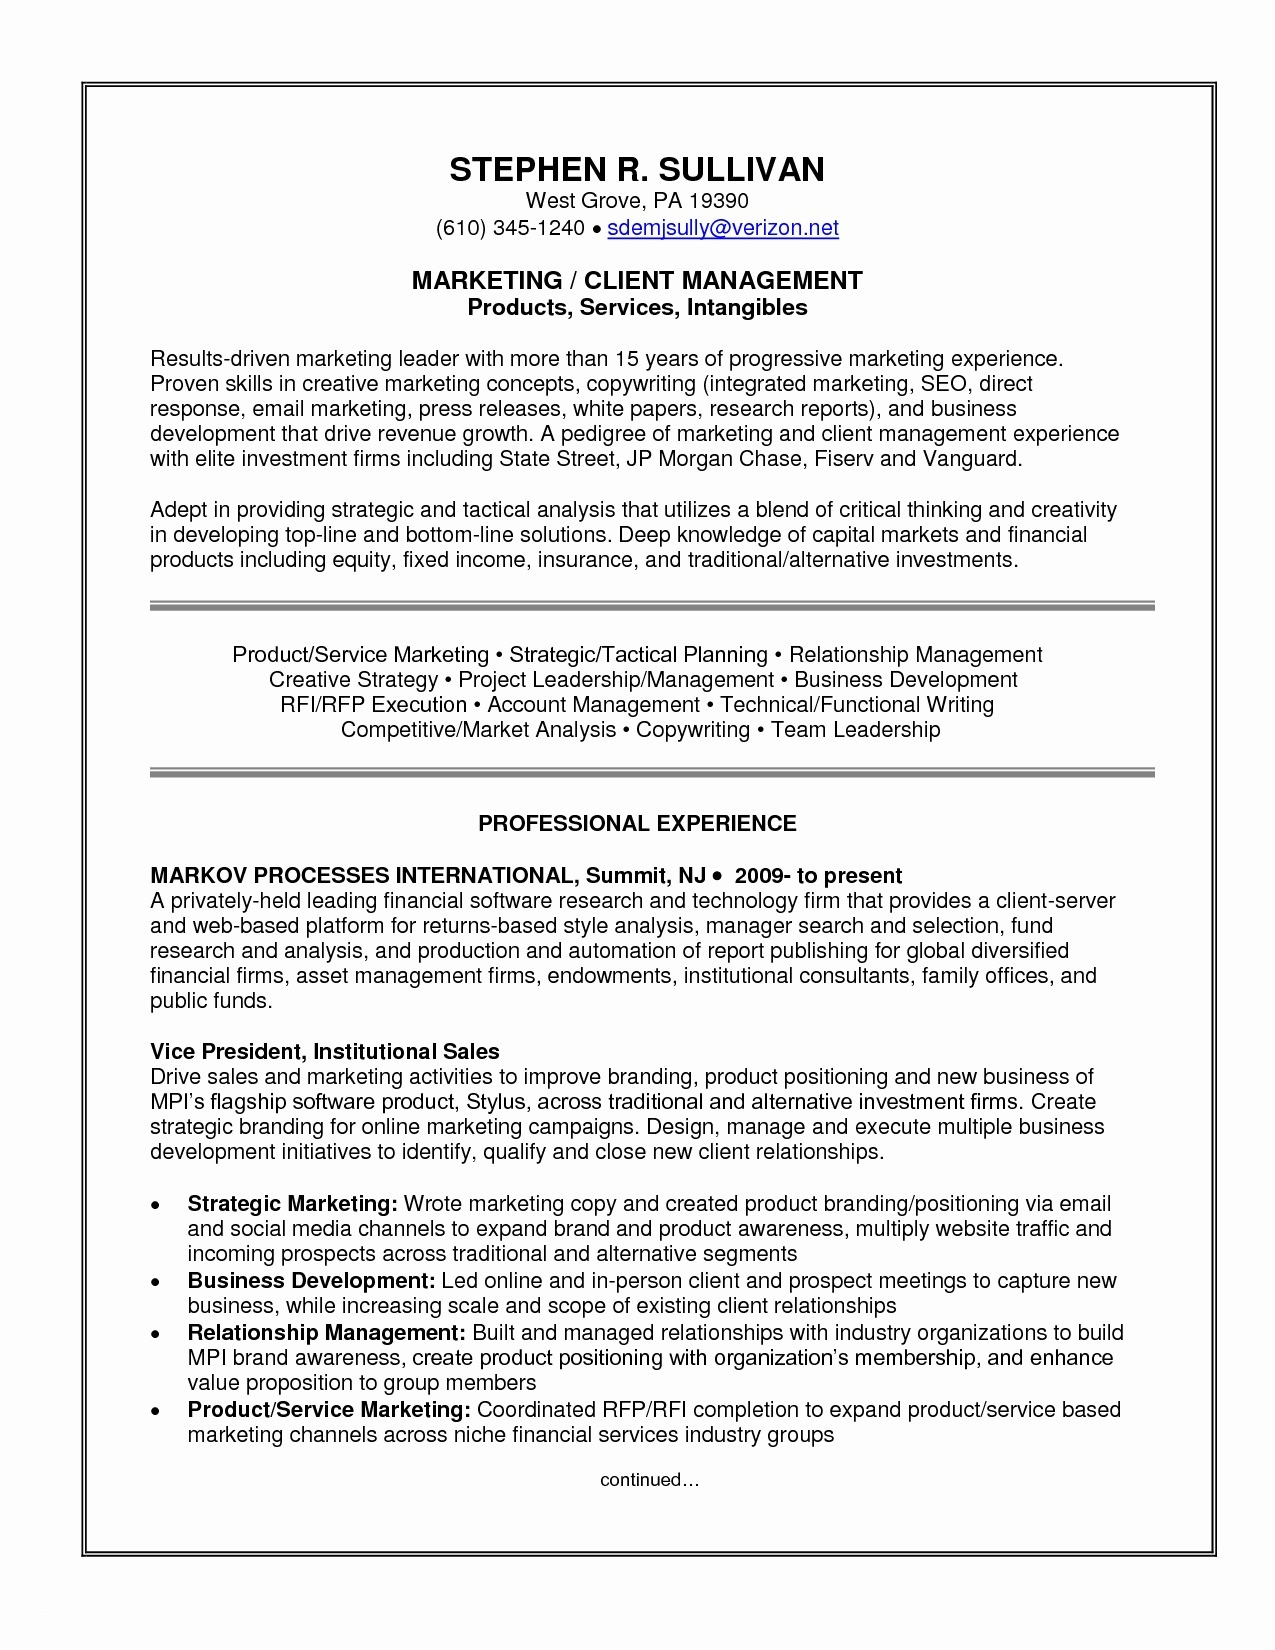 Business Analyst Resume Sample Pdf - Change Career Objective Examples for Resumes Best Business